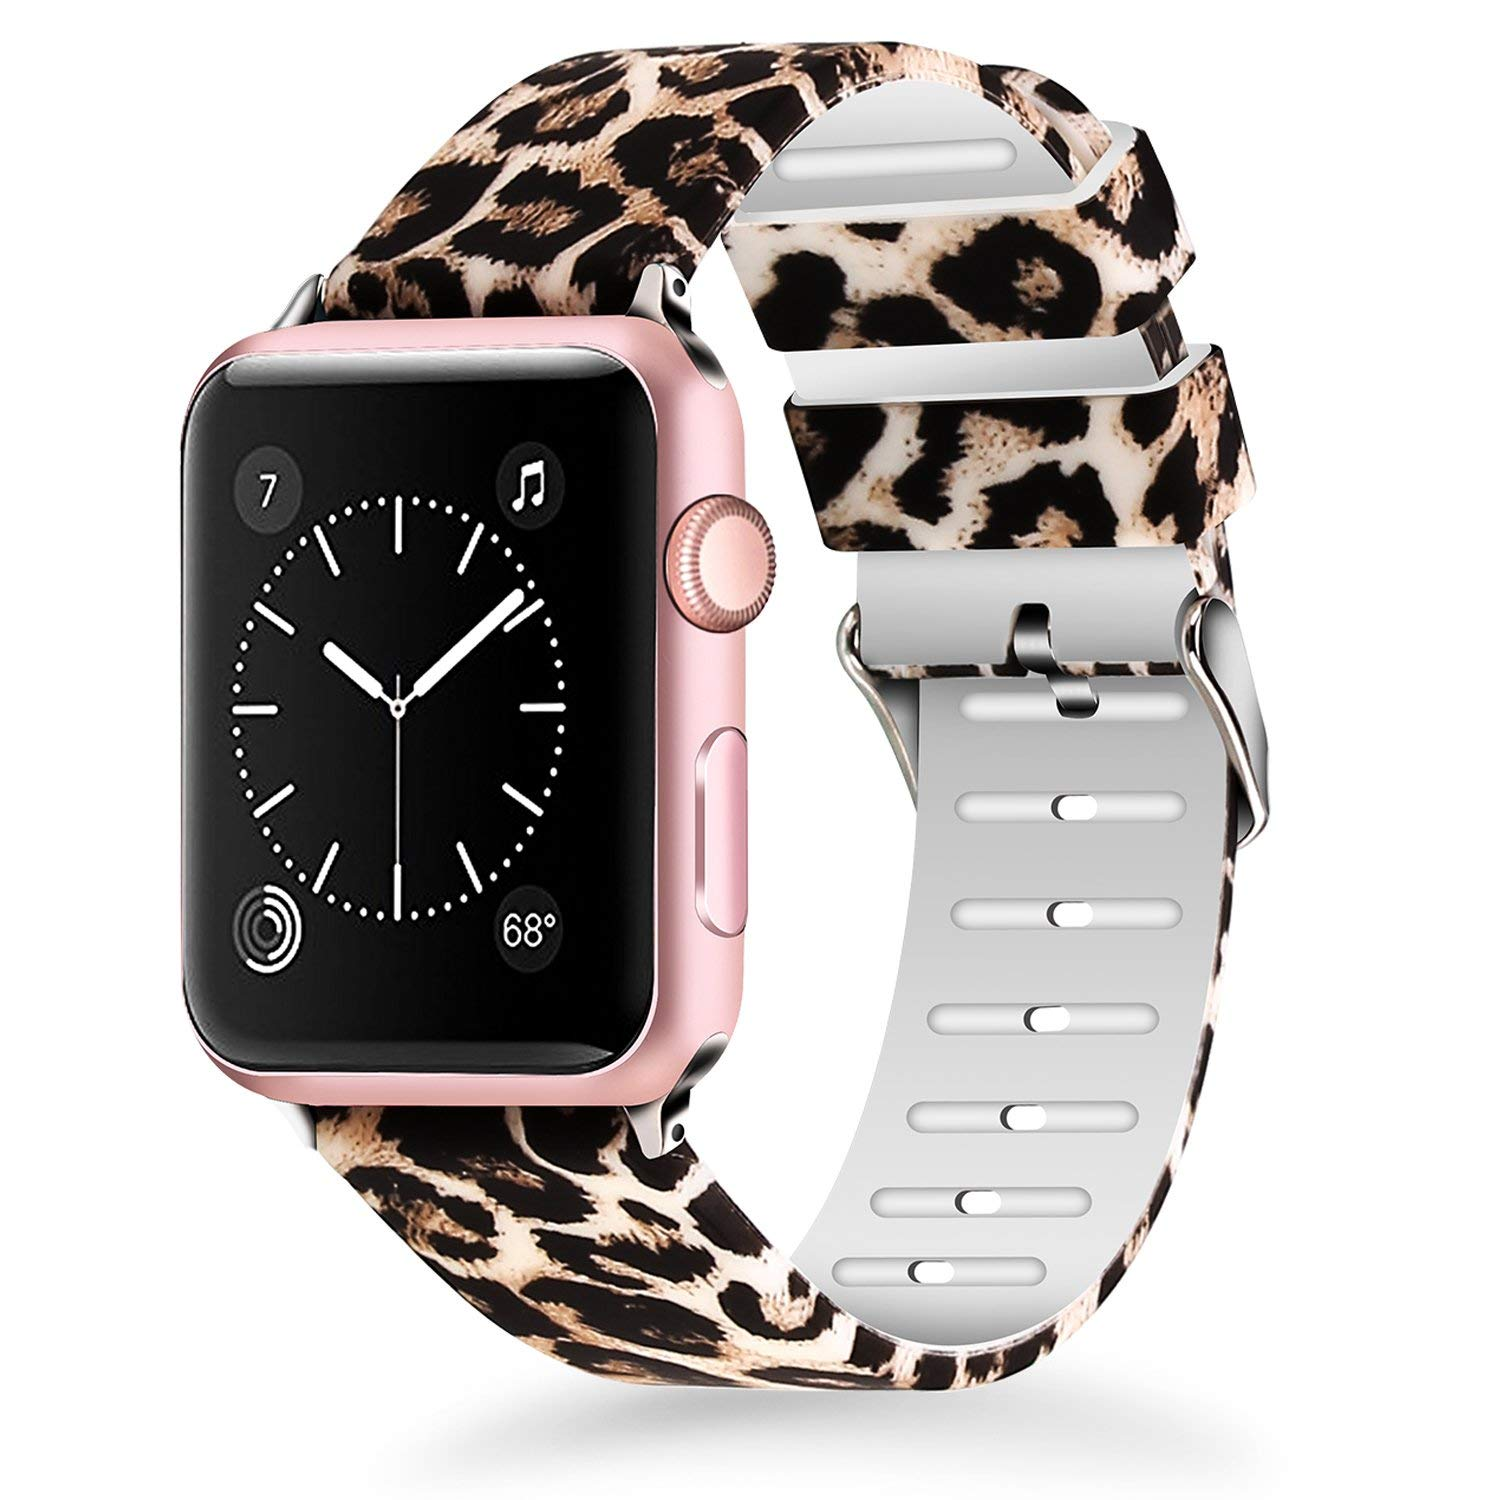 Lwsengme Apple Watch Soft Silicone Leopard Band